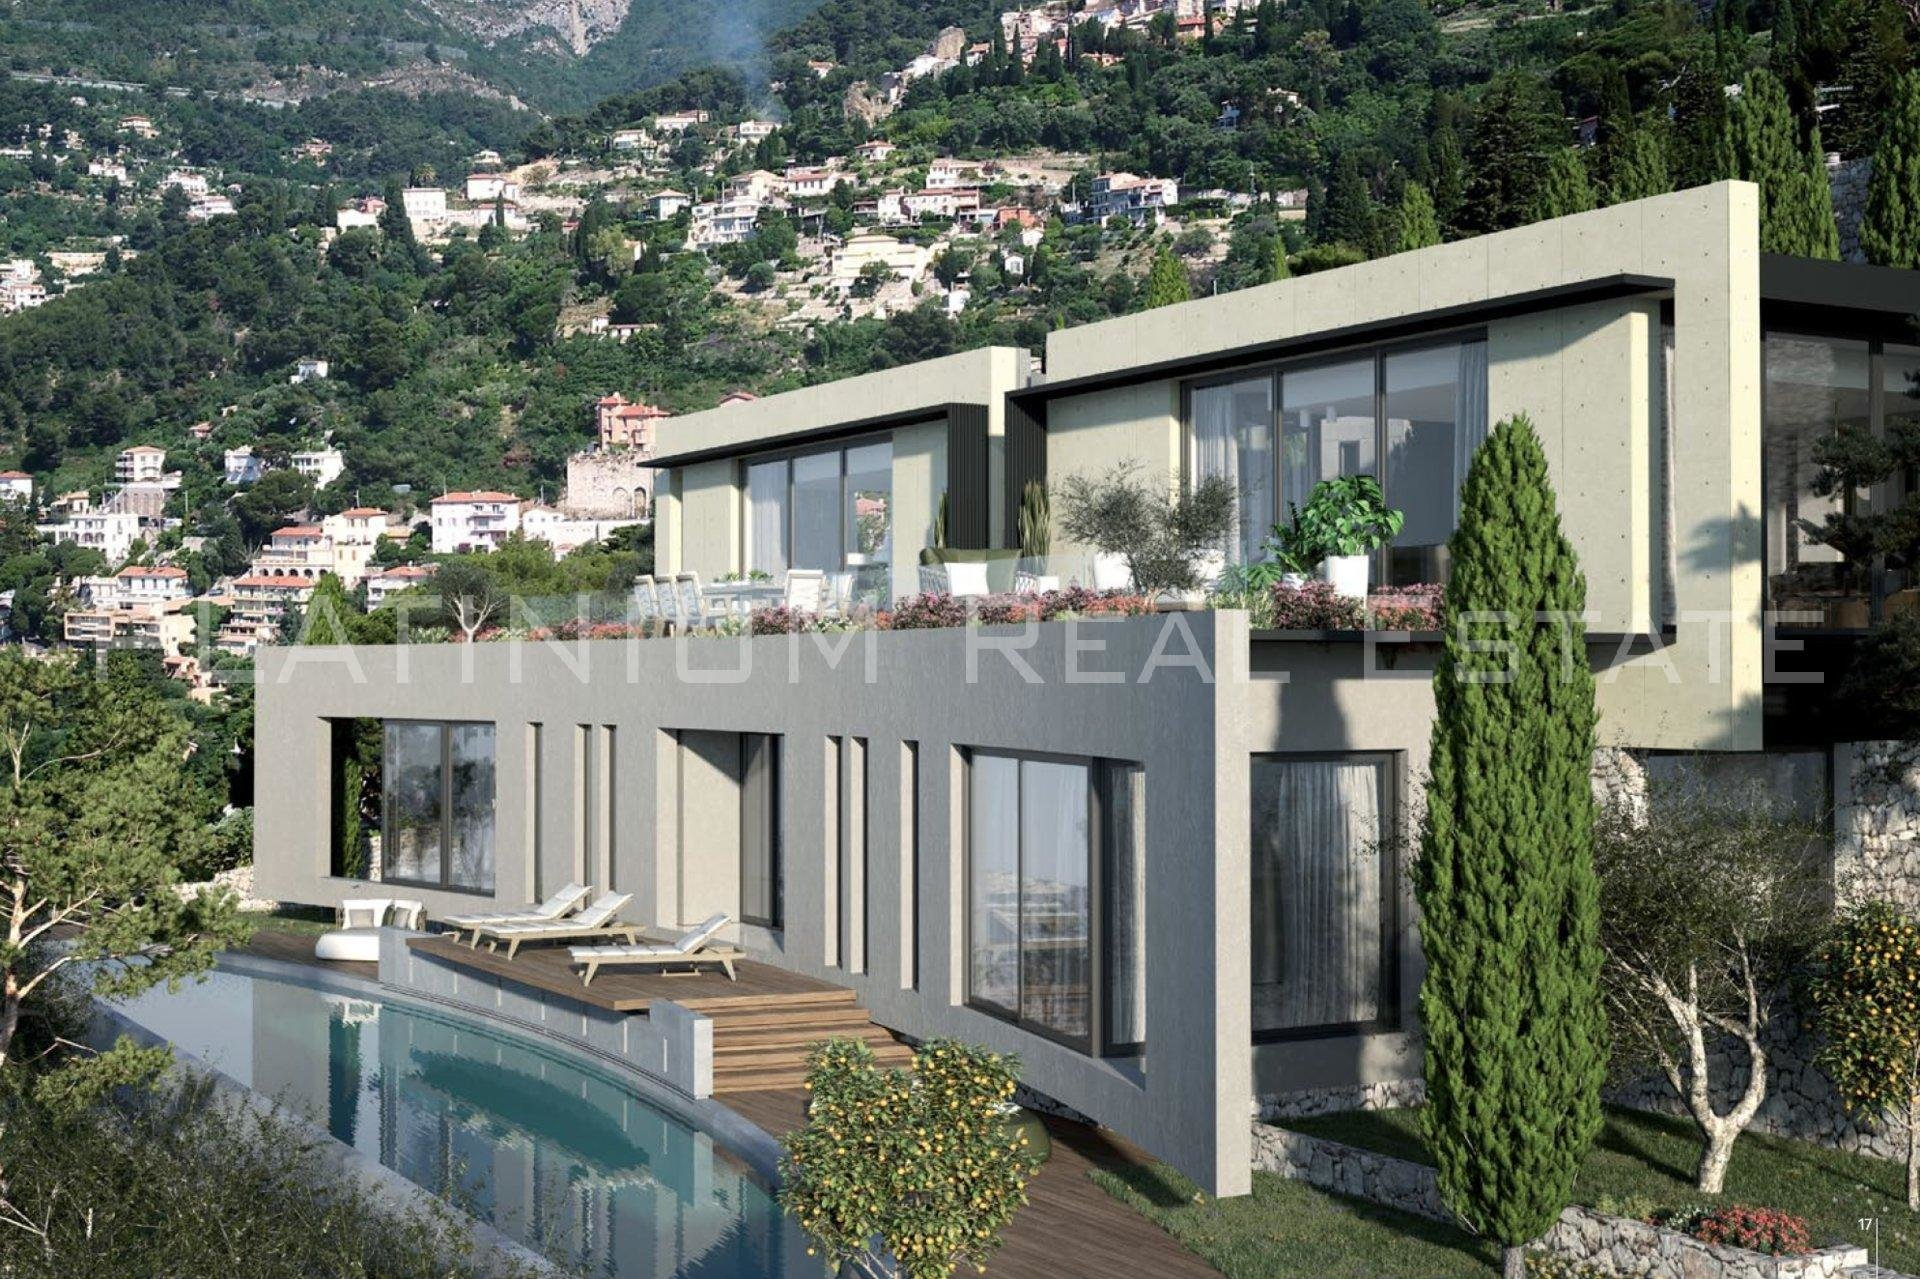 ROQUEBRUNE-CAP-MARTIN | Villa 420 m² habitable + 300 m² garage - panoramic sea view